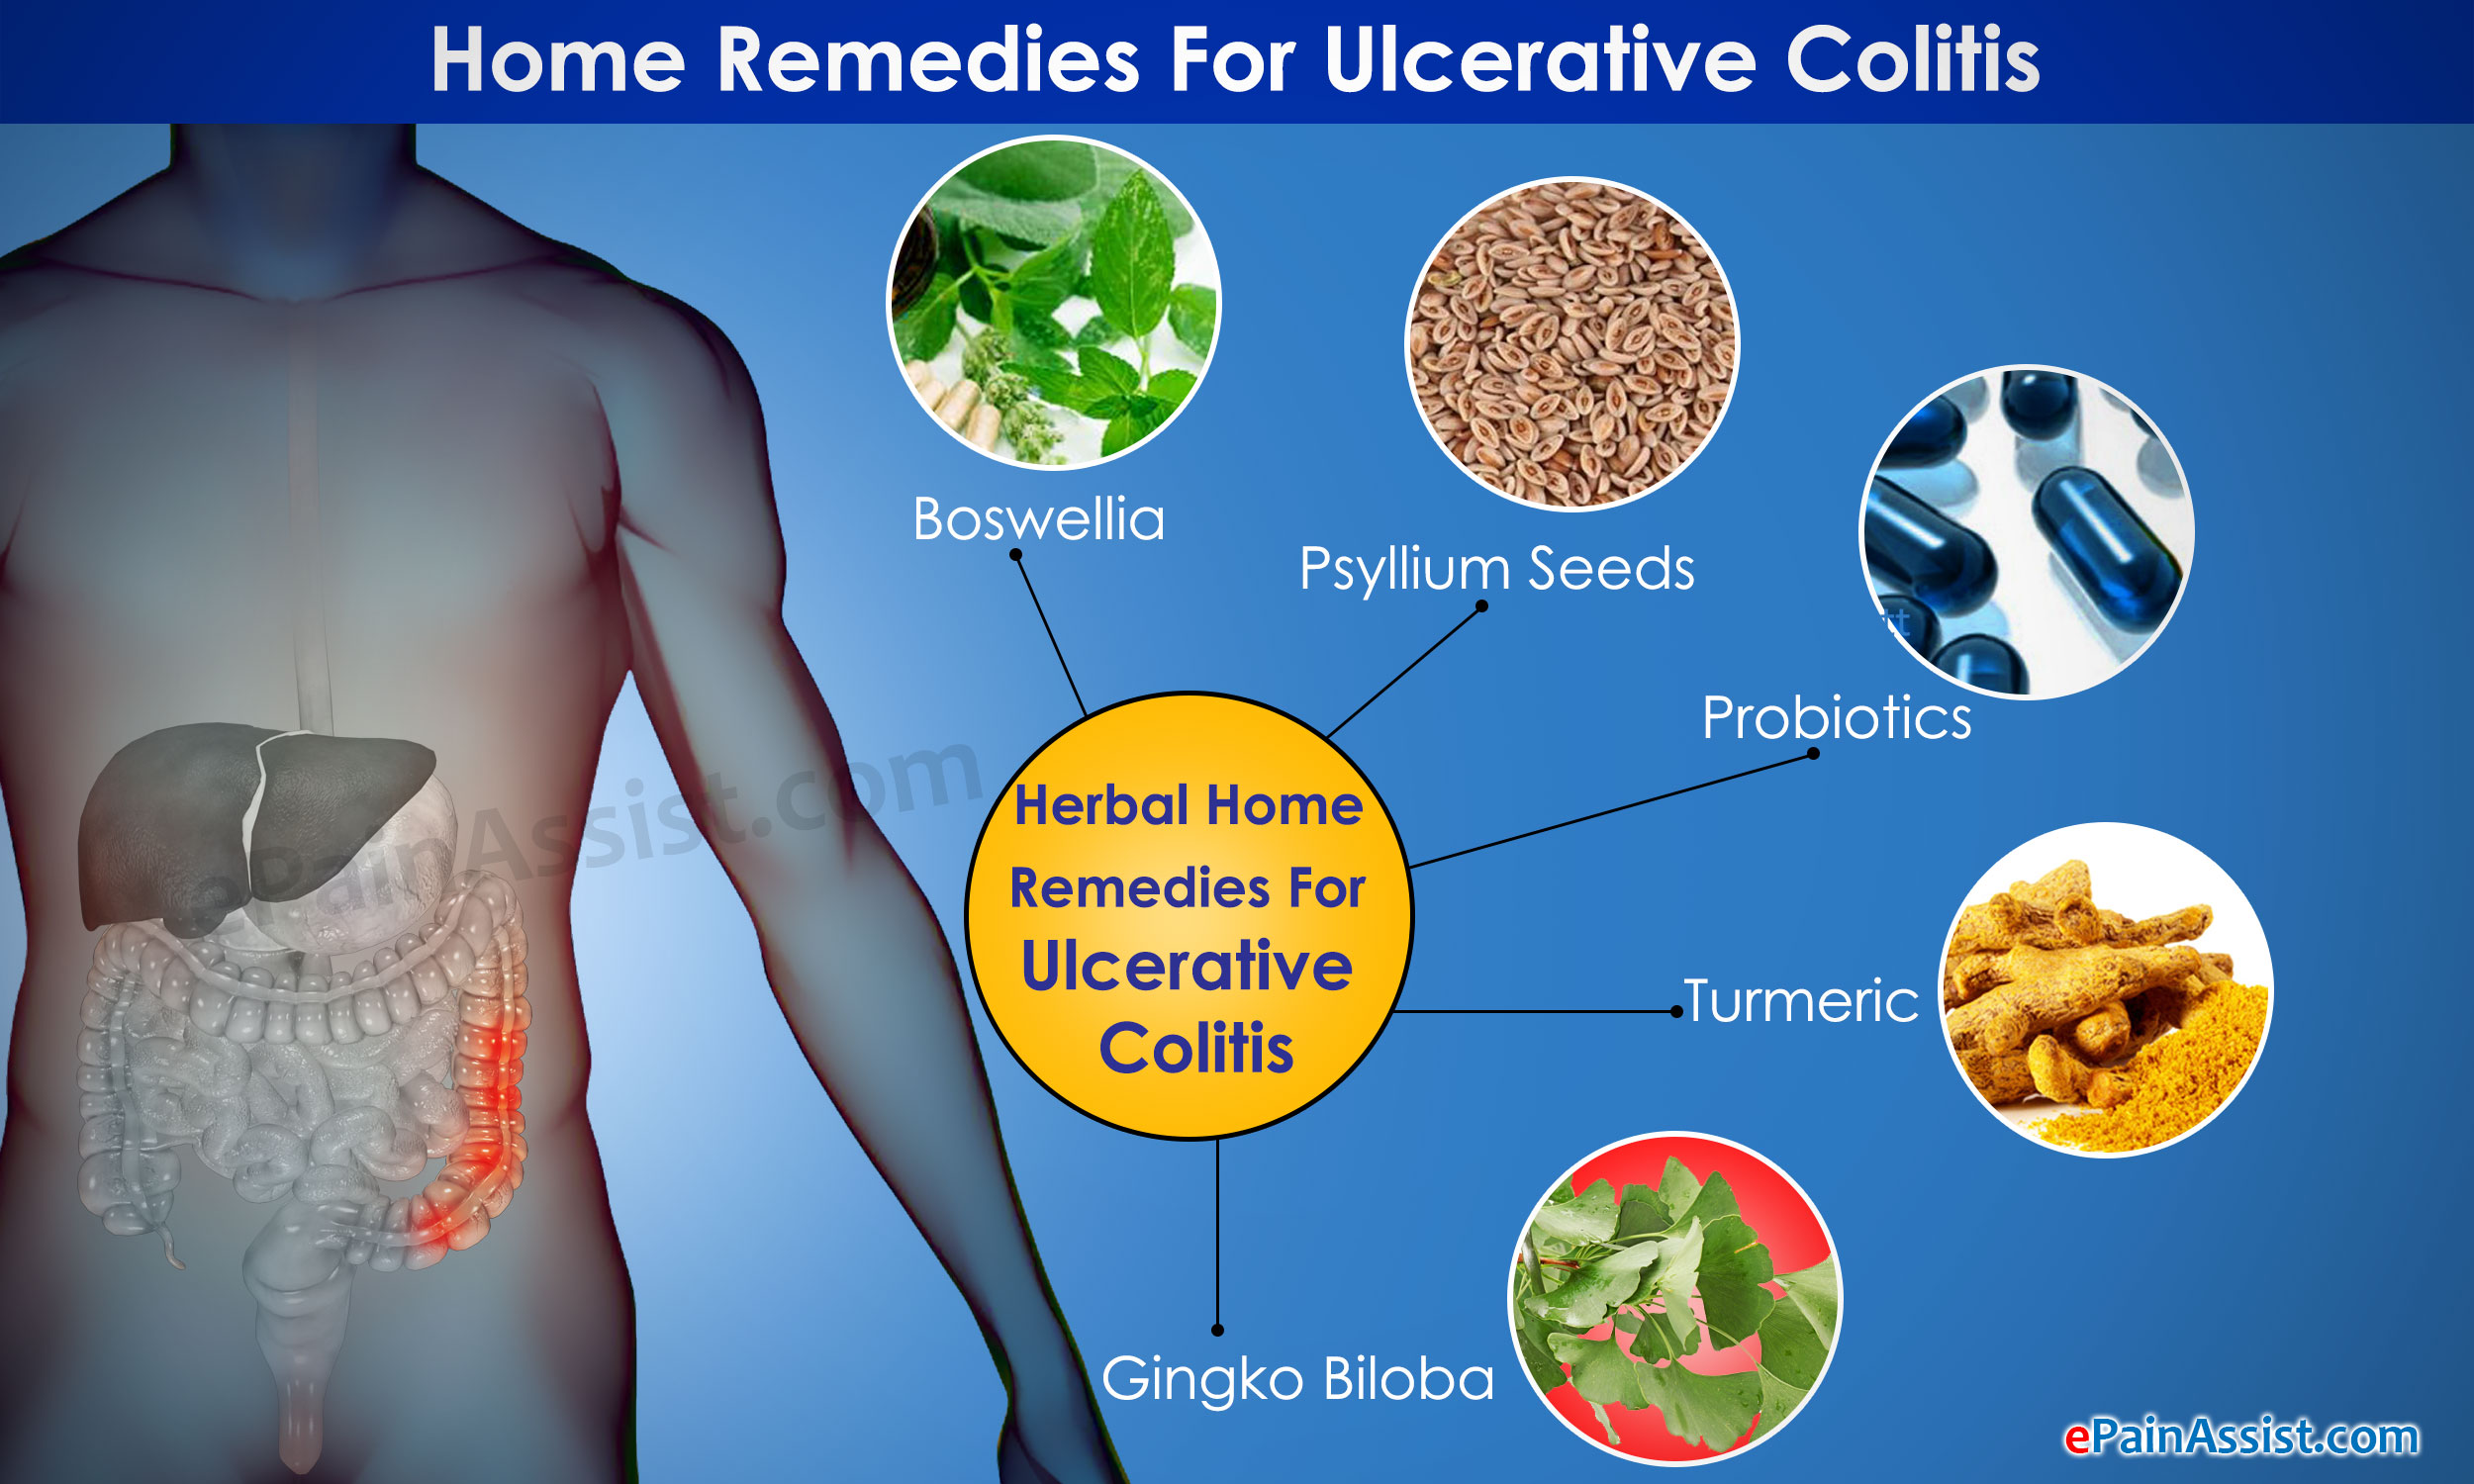 How Can I Treat Colitis Naturally